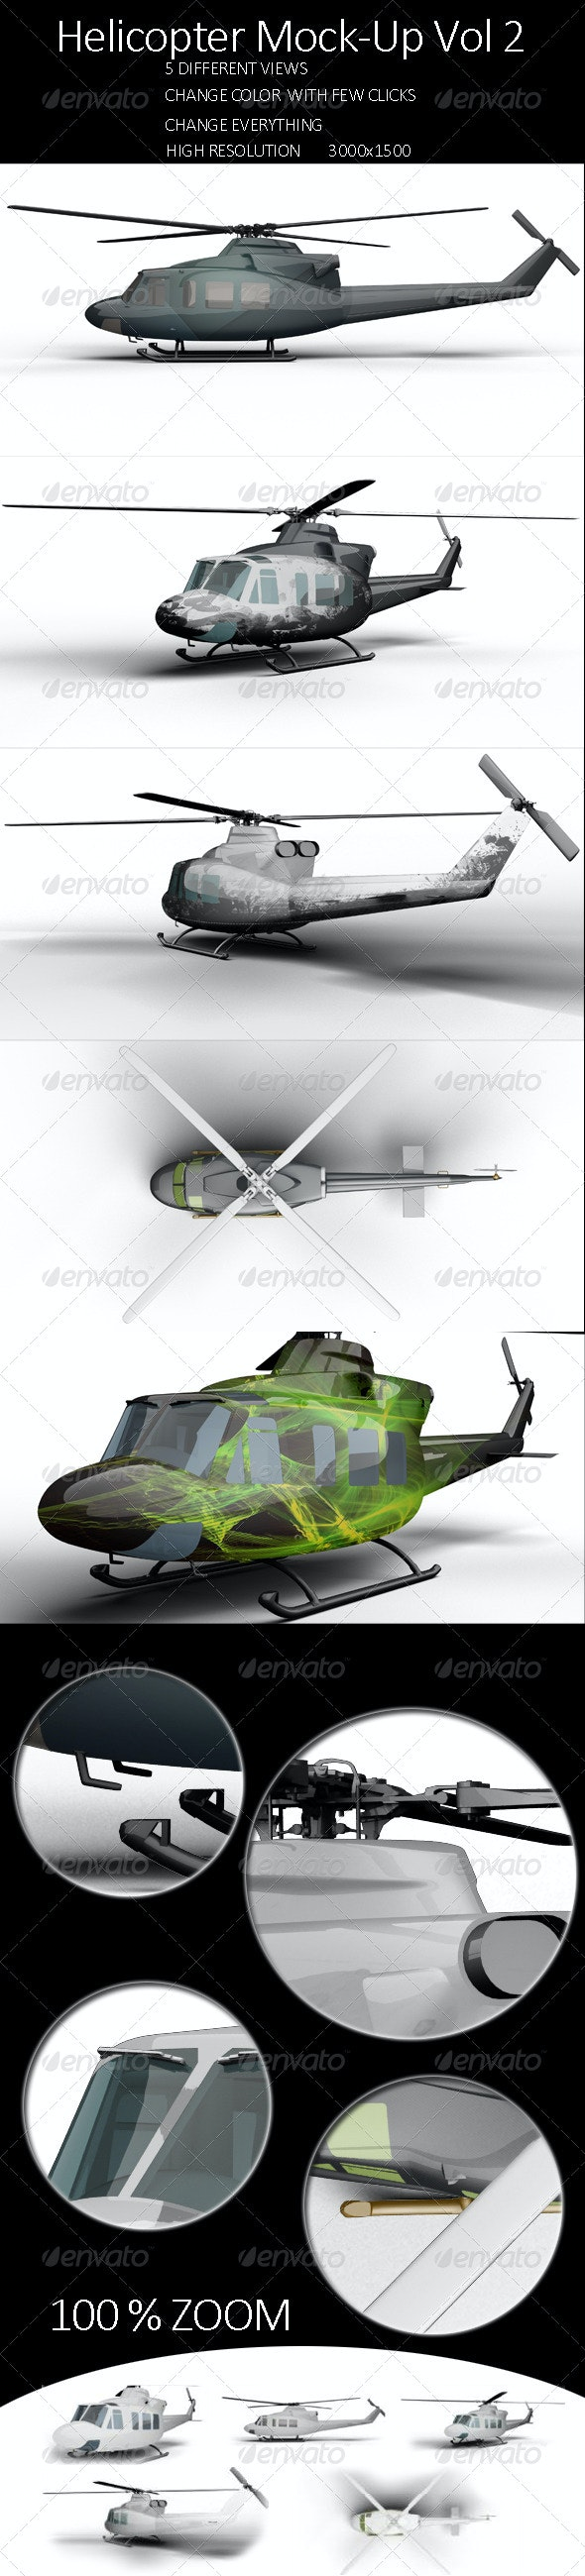 Helicopter Mock-Up Vol 2 - Product Mock-Ups Graphics